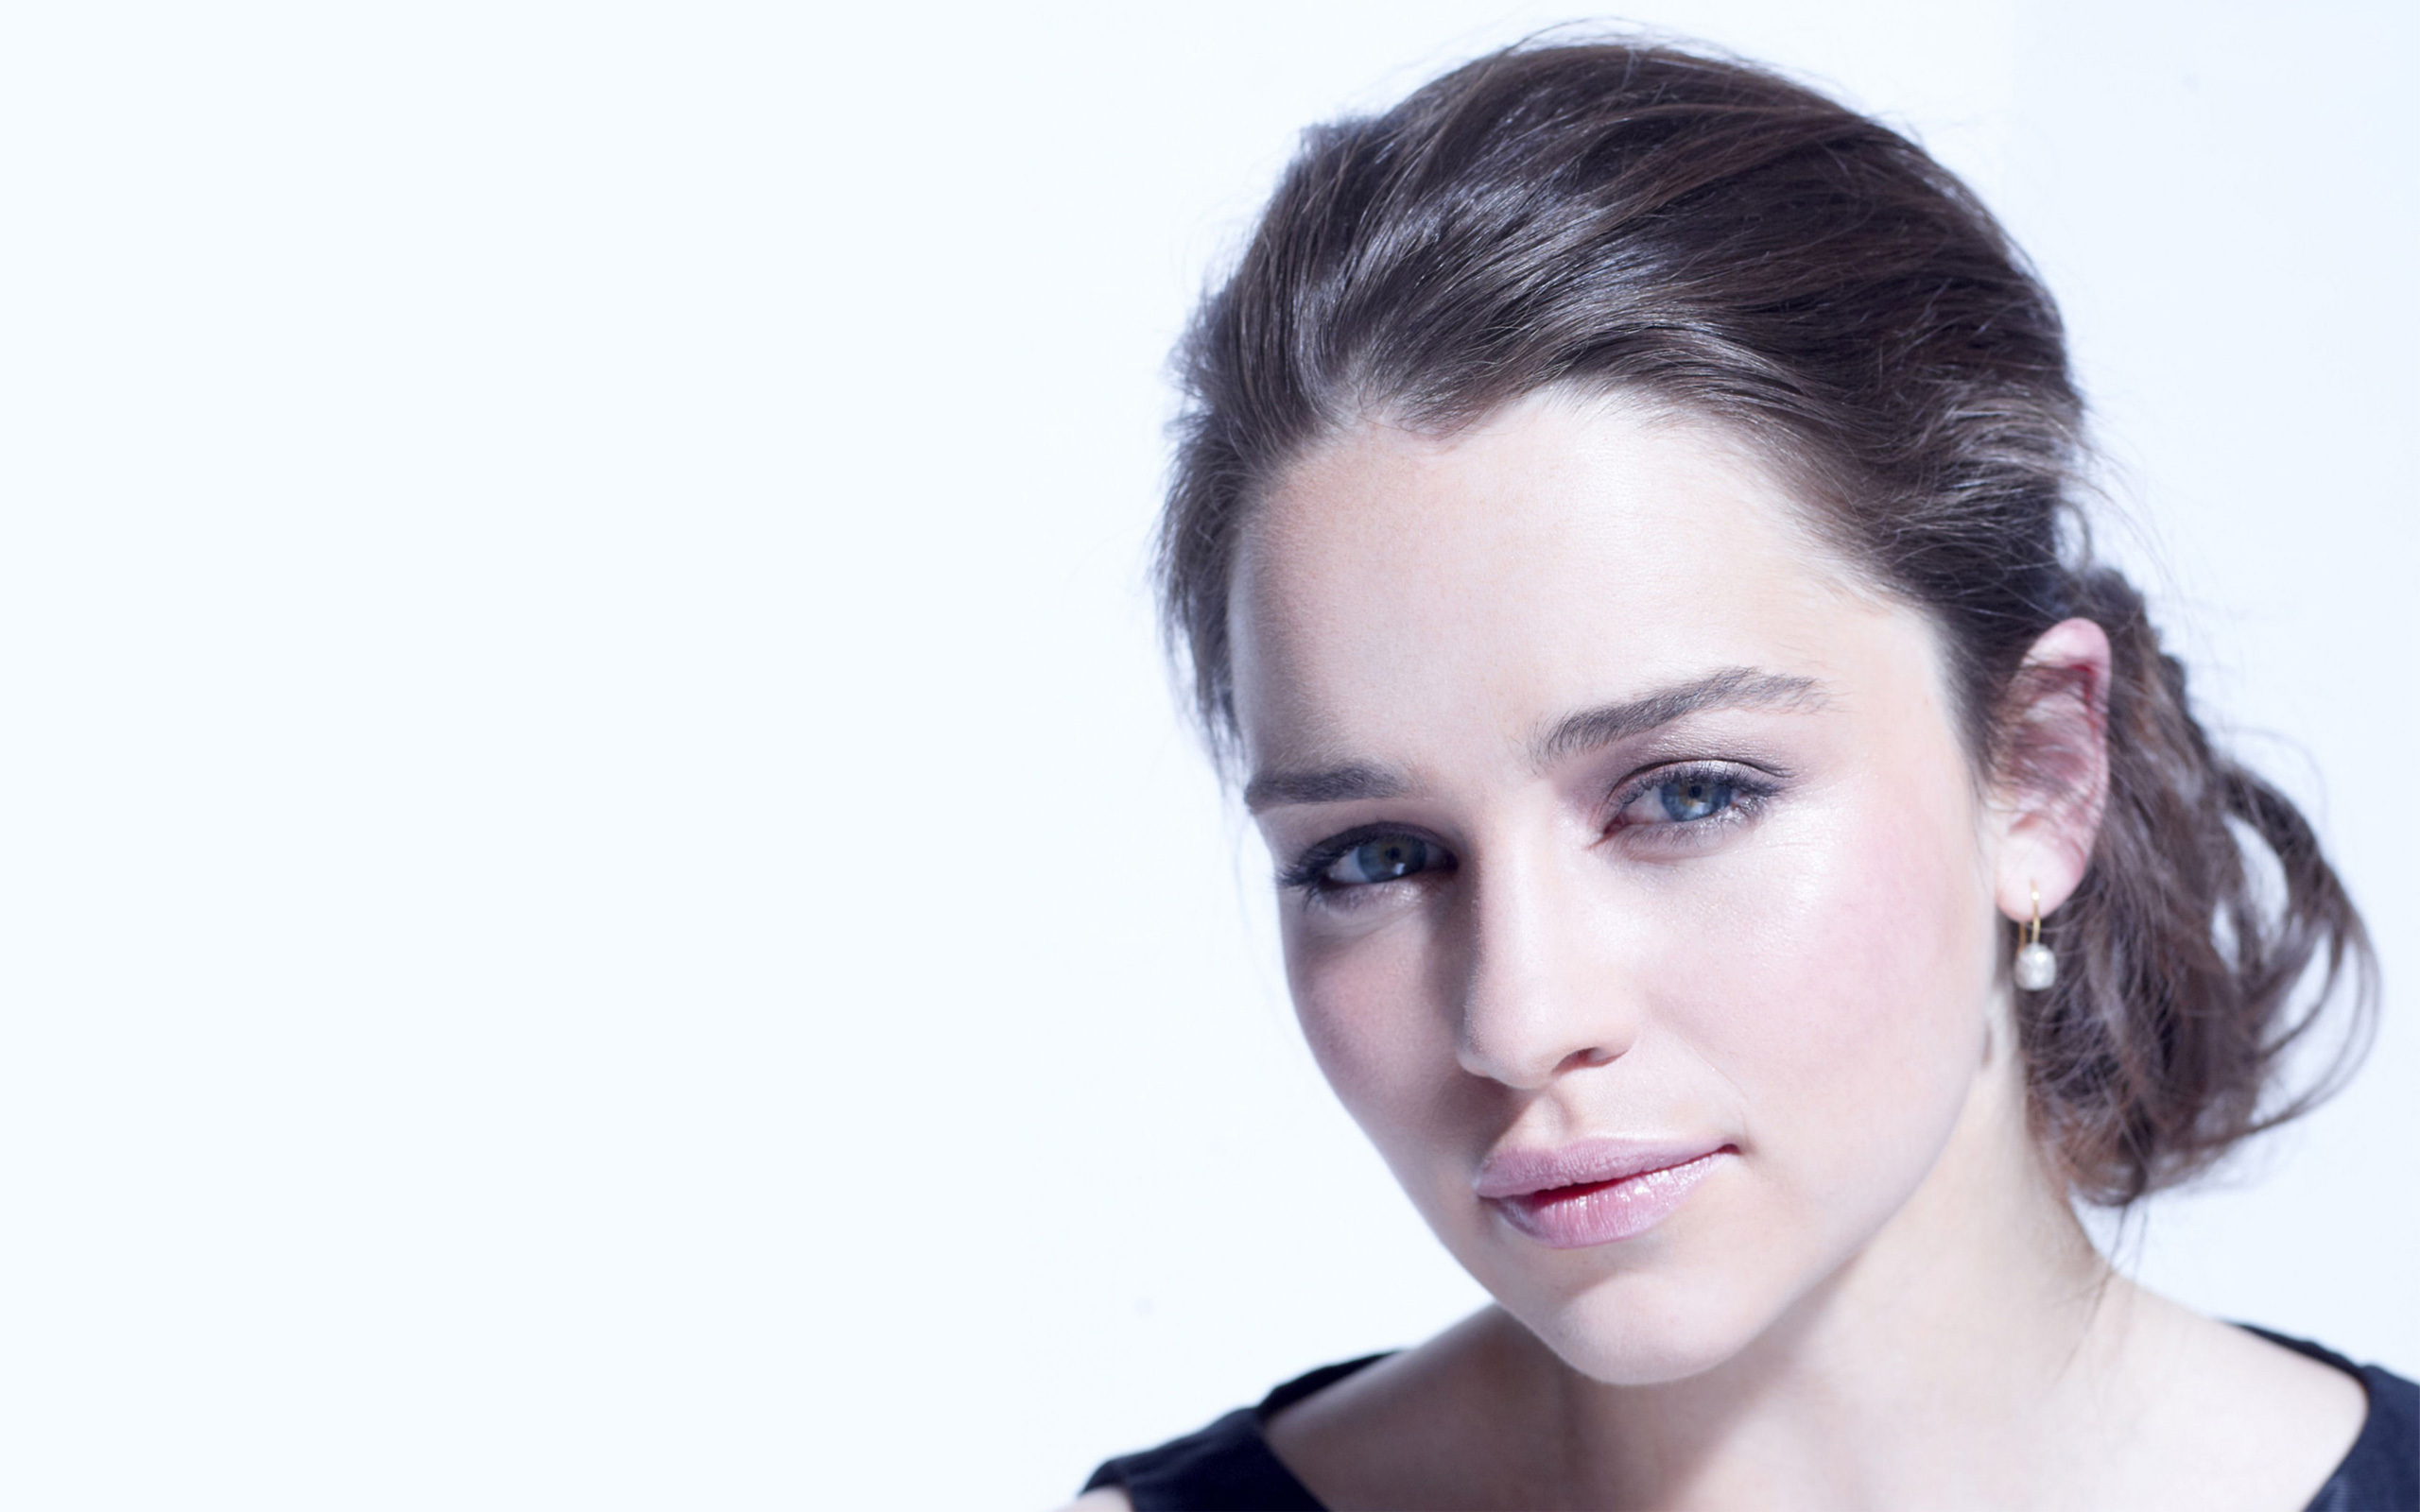 Desktop Emilia Clarke Beautiful Attractive Look Free Mobile Background Pictures Hd